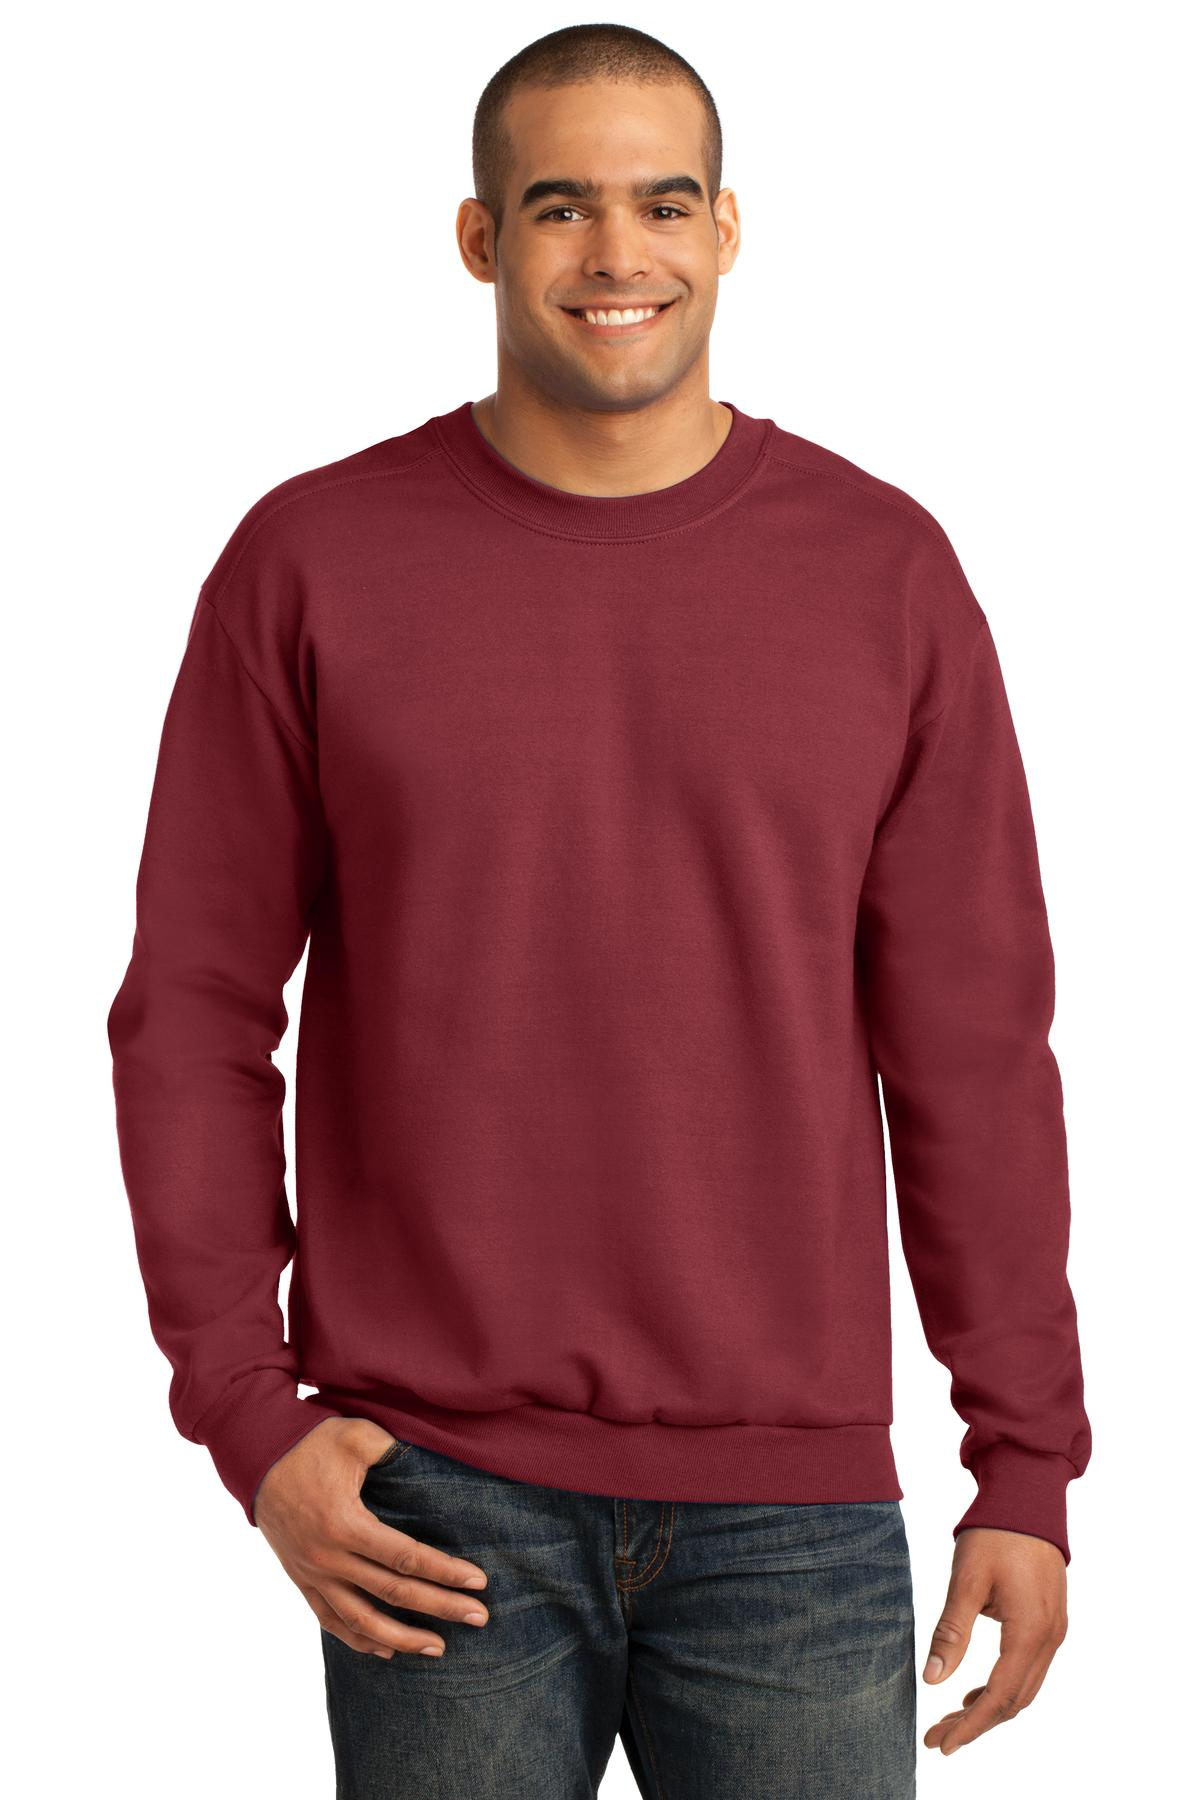 Sweatshirts-Fleece-Crew-Necks-7